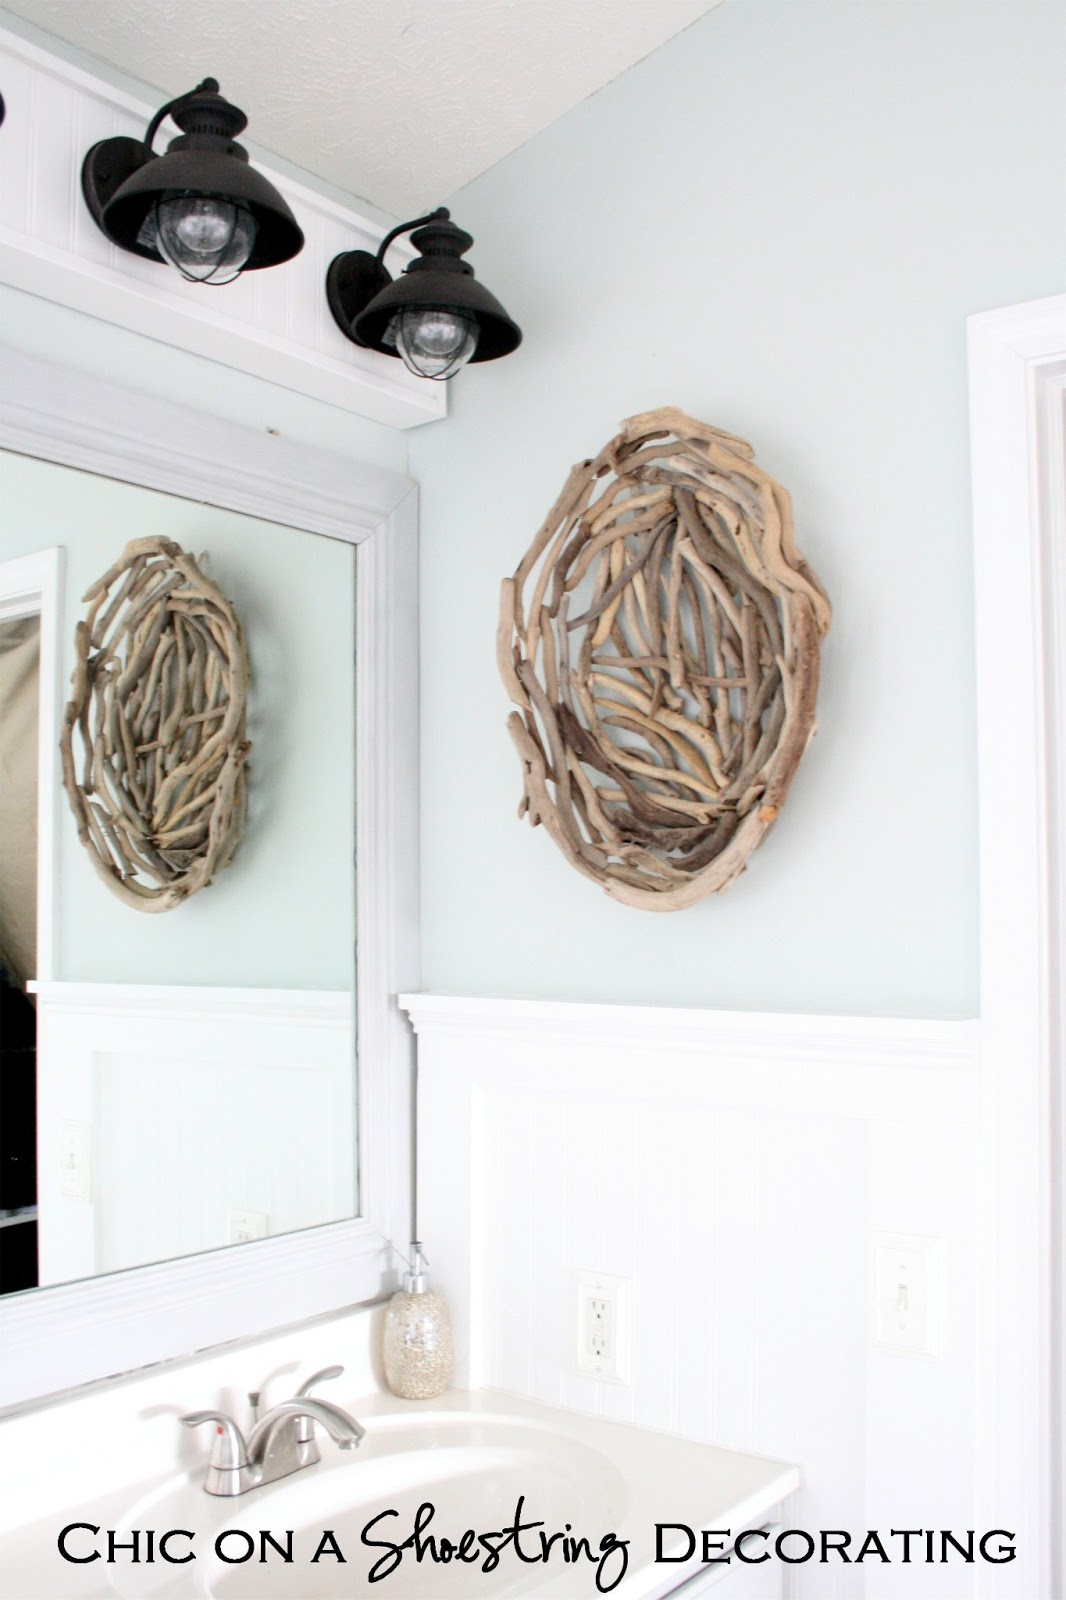 Chic on a shoestring decorating beachy bathroom reveal for Wall art for master bathroom